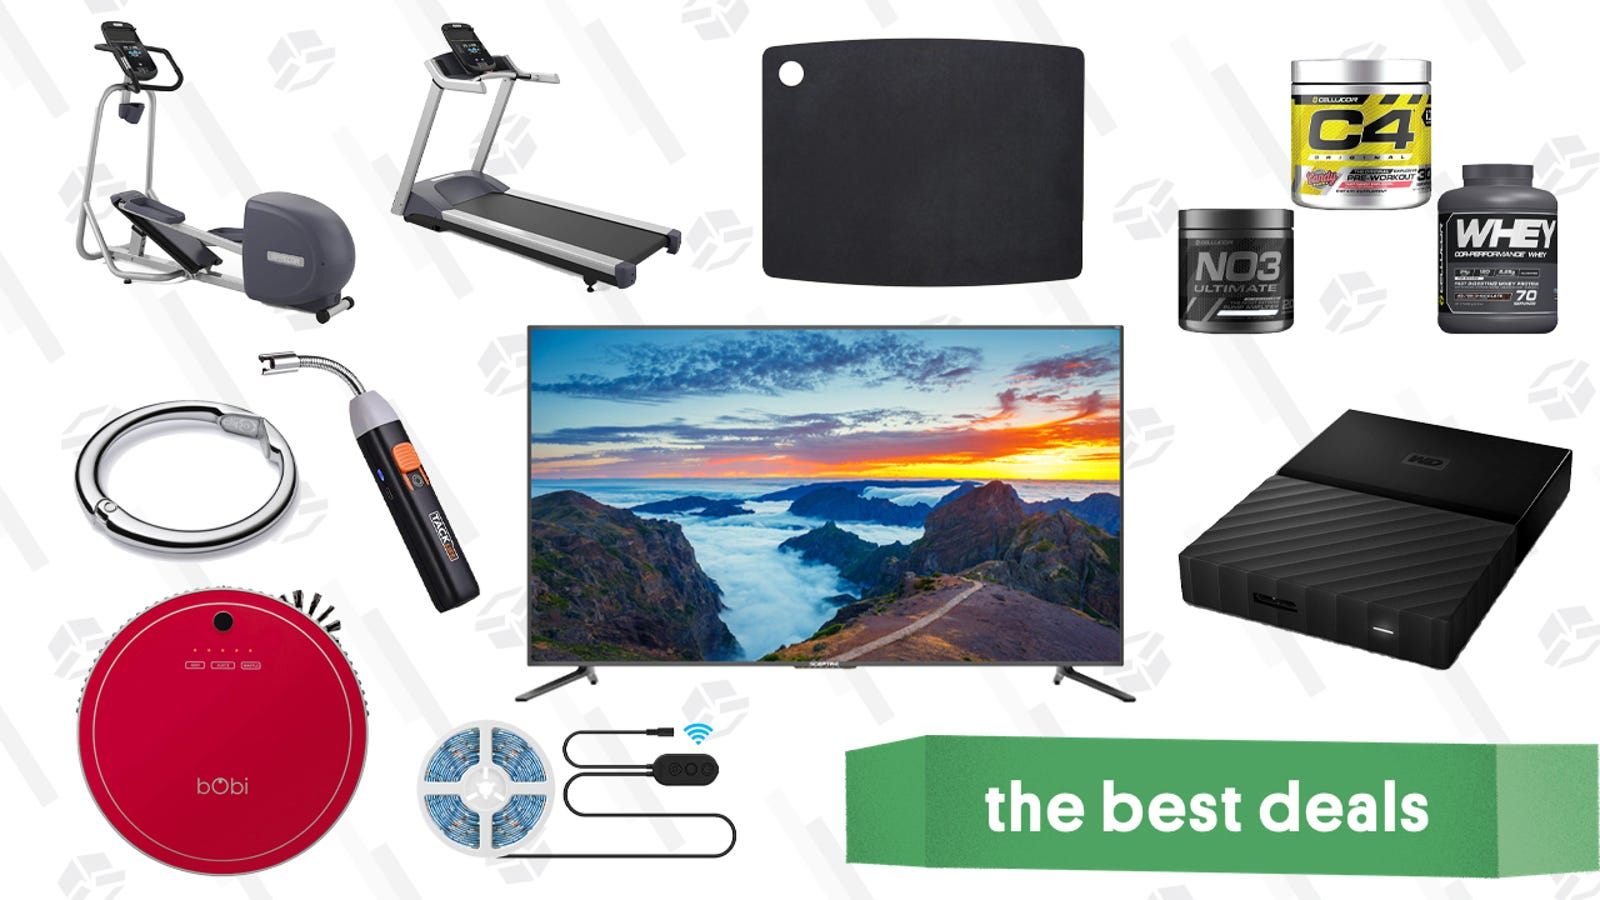 QnA VBage Thursday's Best Deals: Robotic Vacuums, SSDs, Precor Workout Equipment, and More